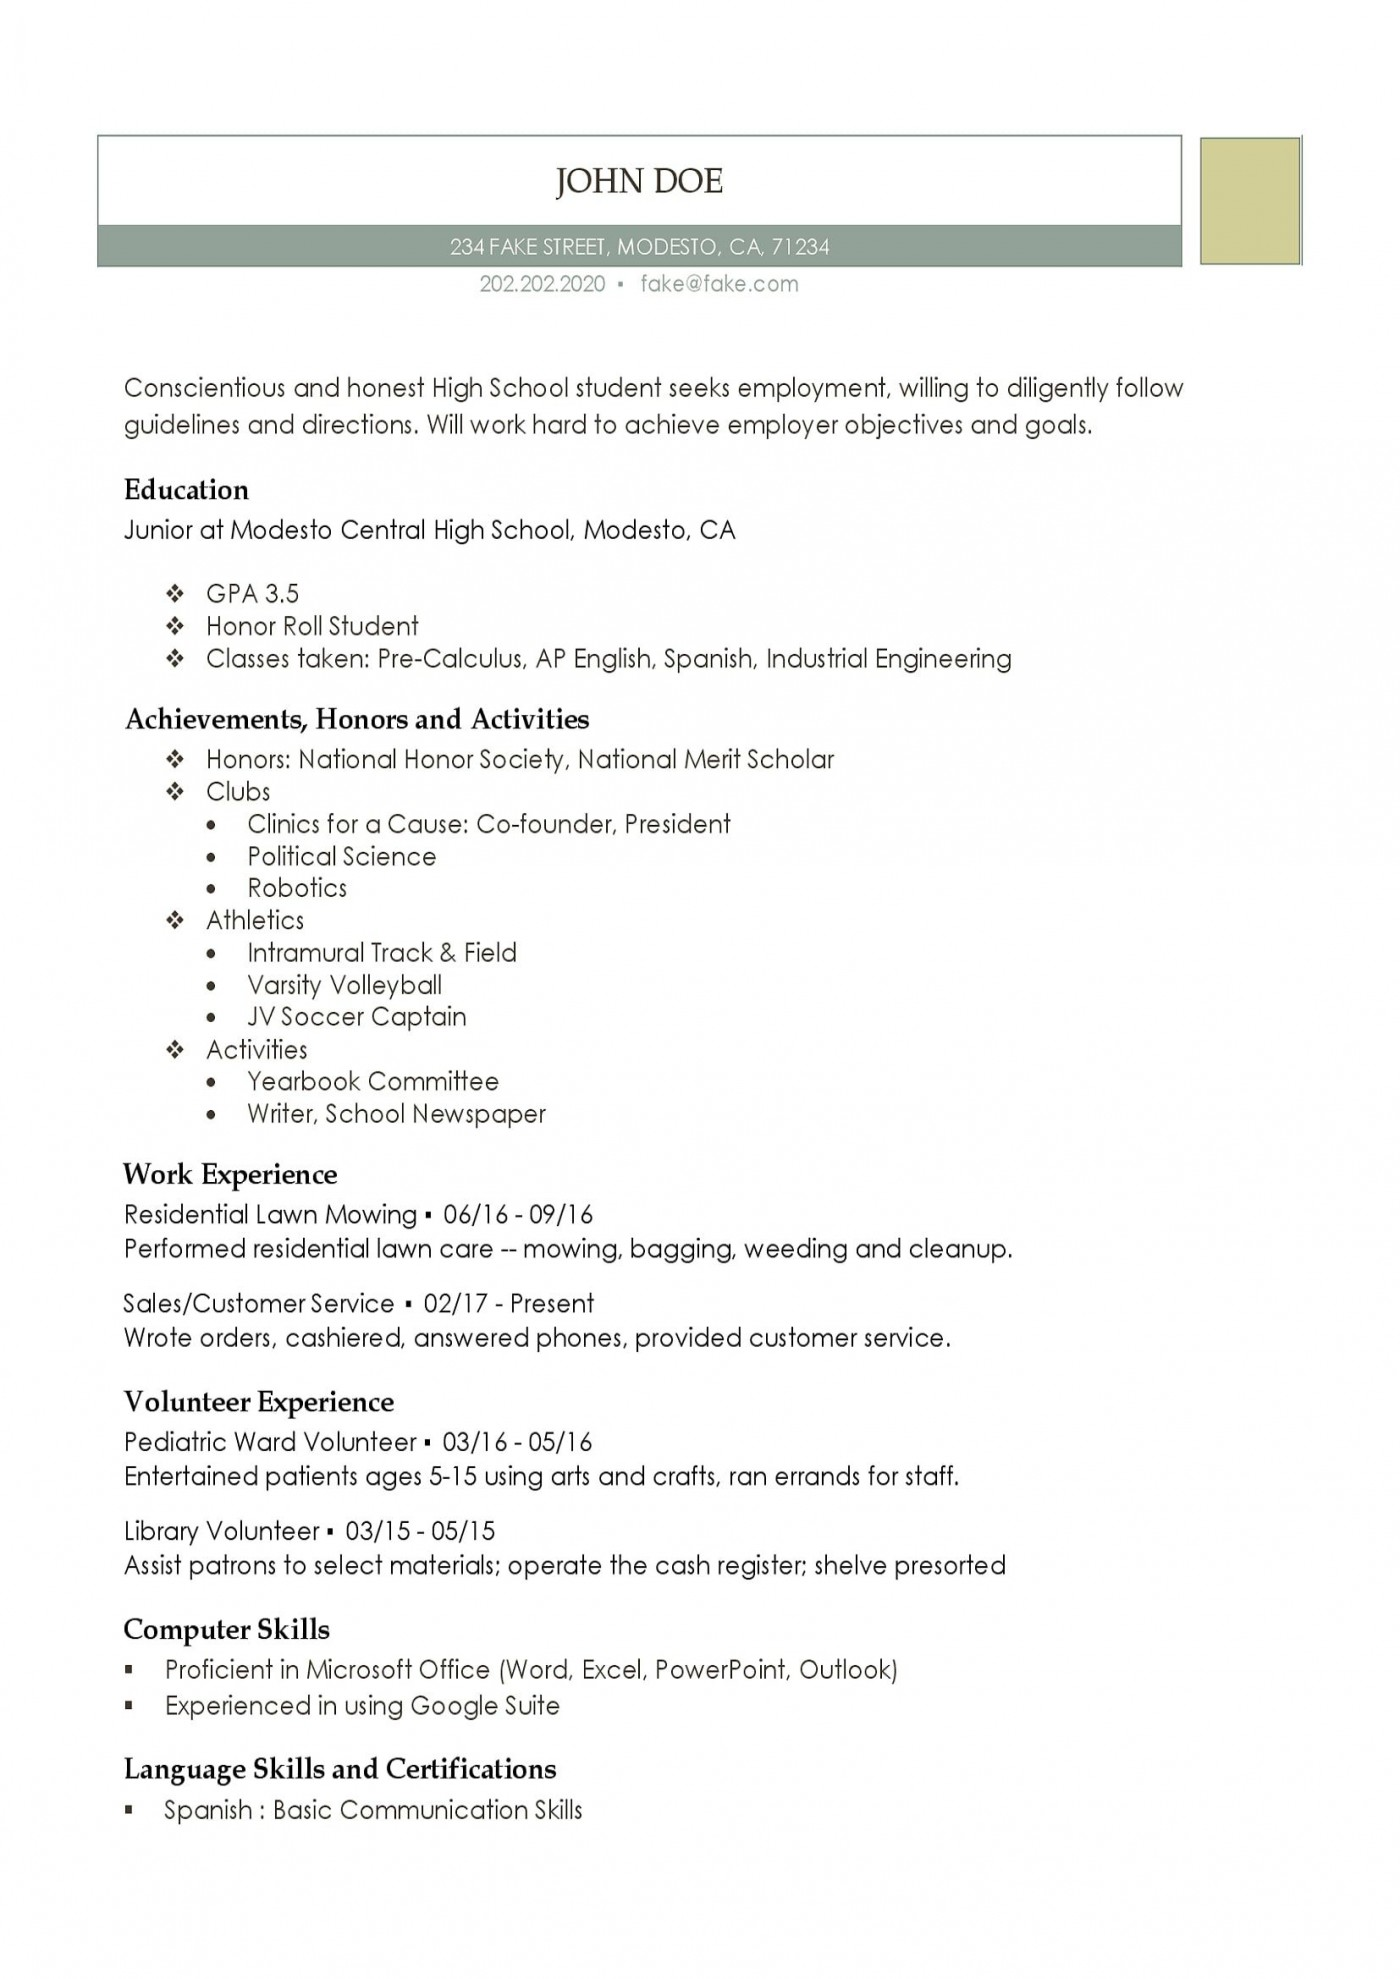 002 Incredible Student Resume Template Word Image  High School Free College Microsoft Download1400